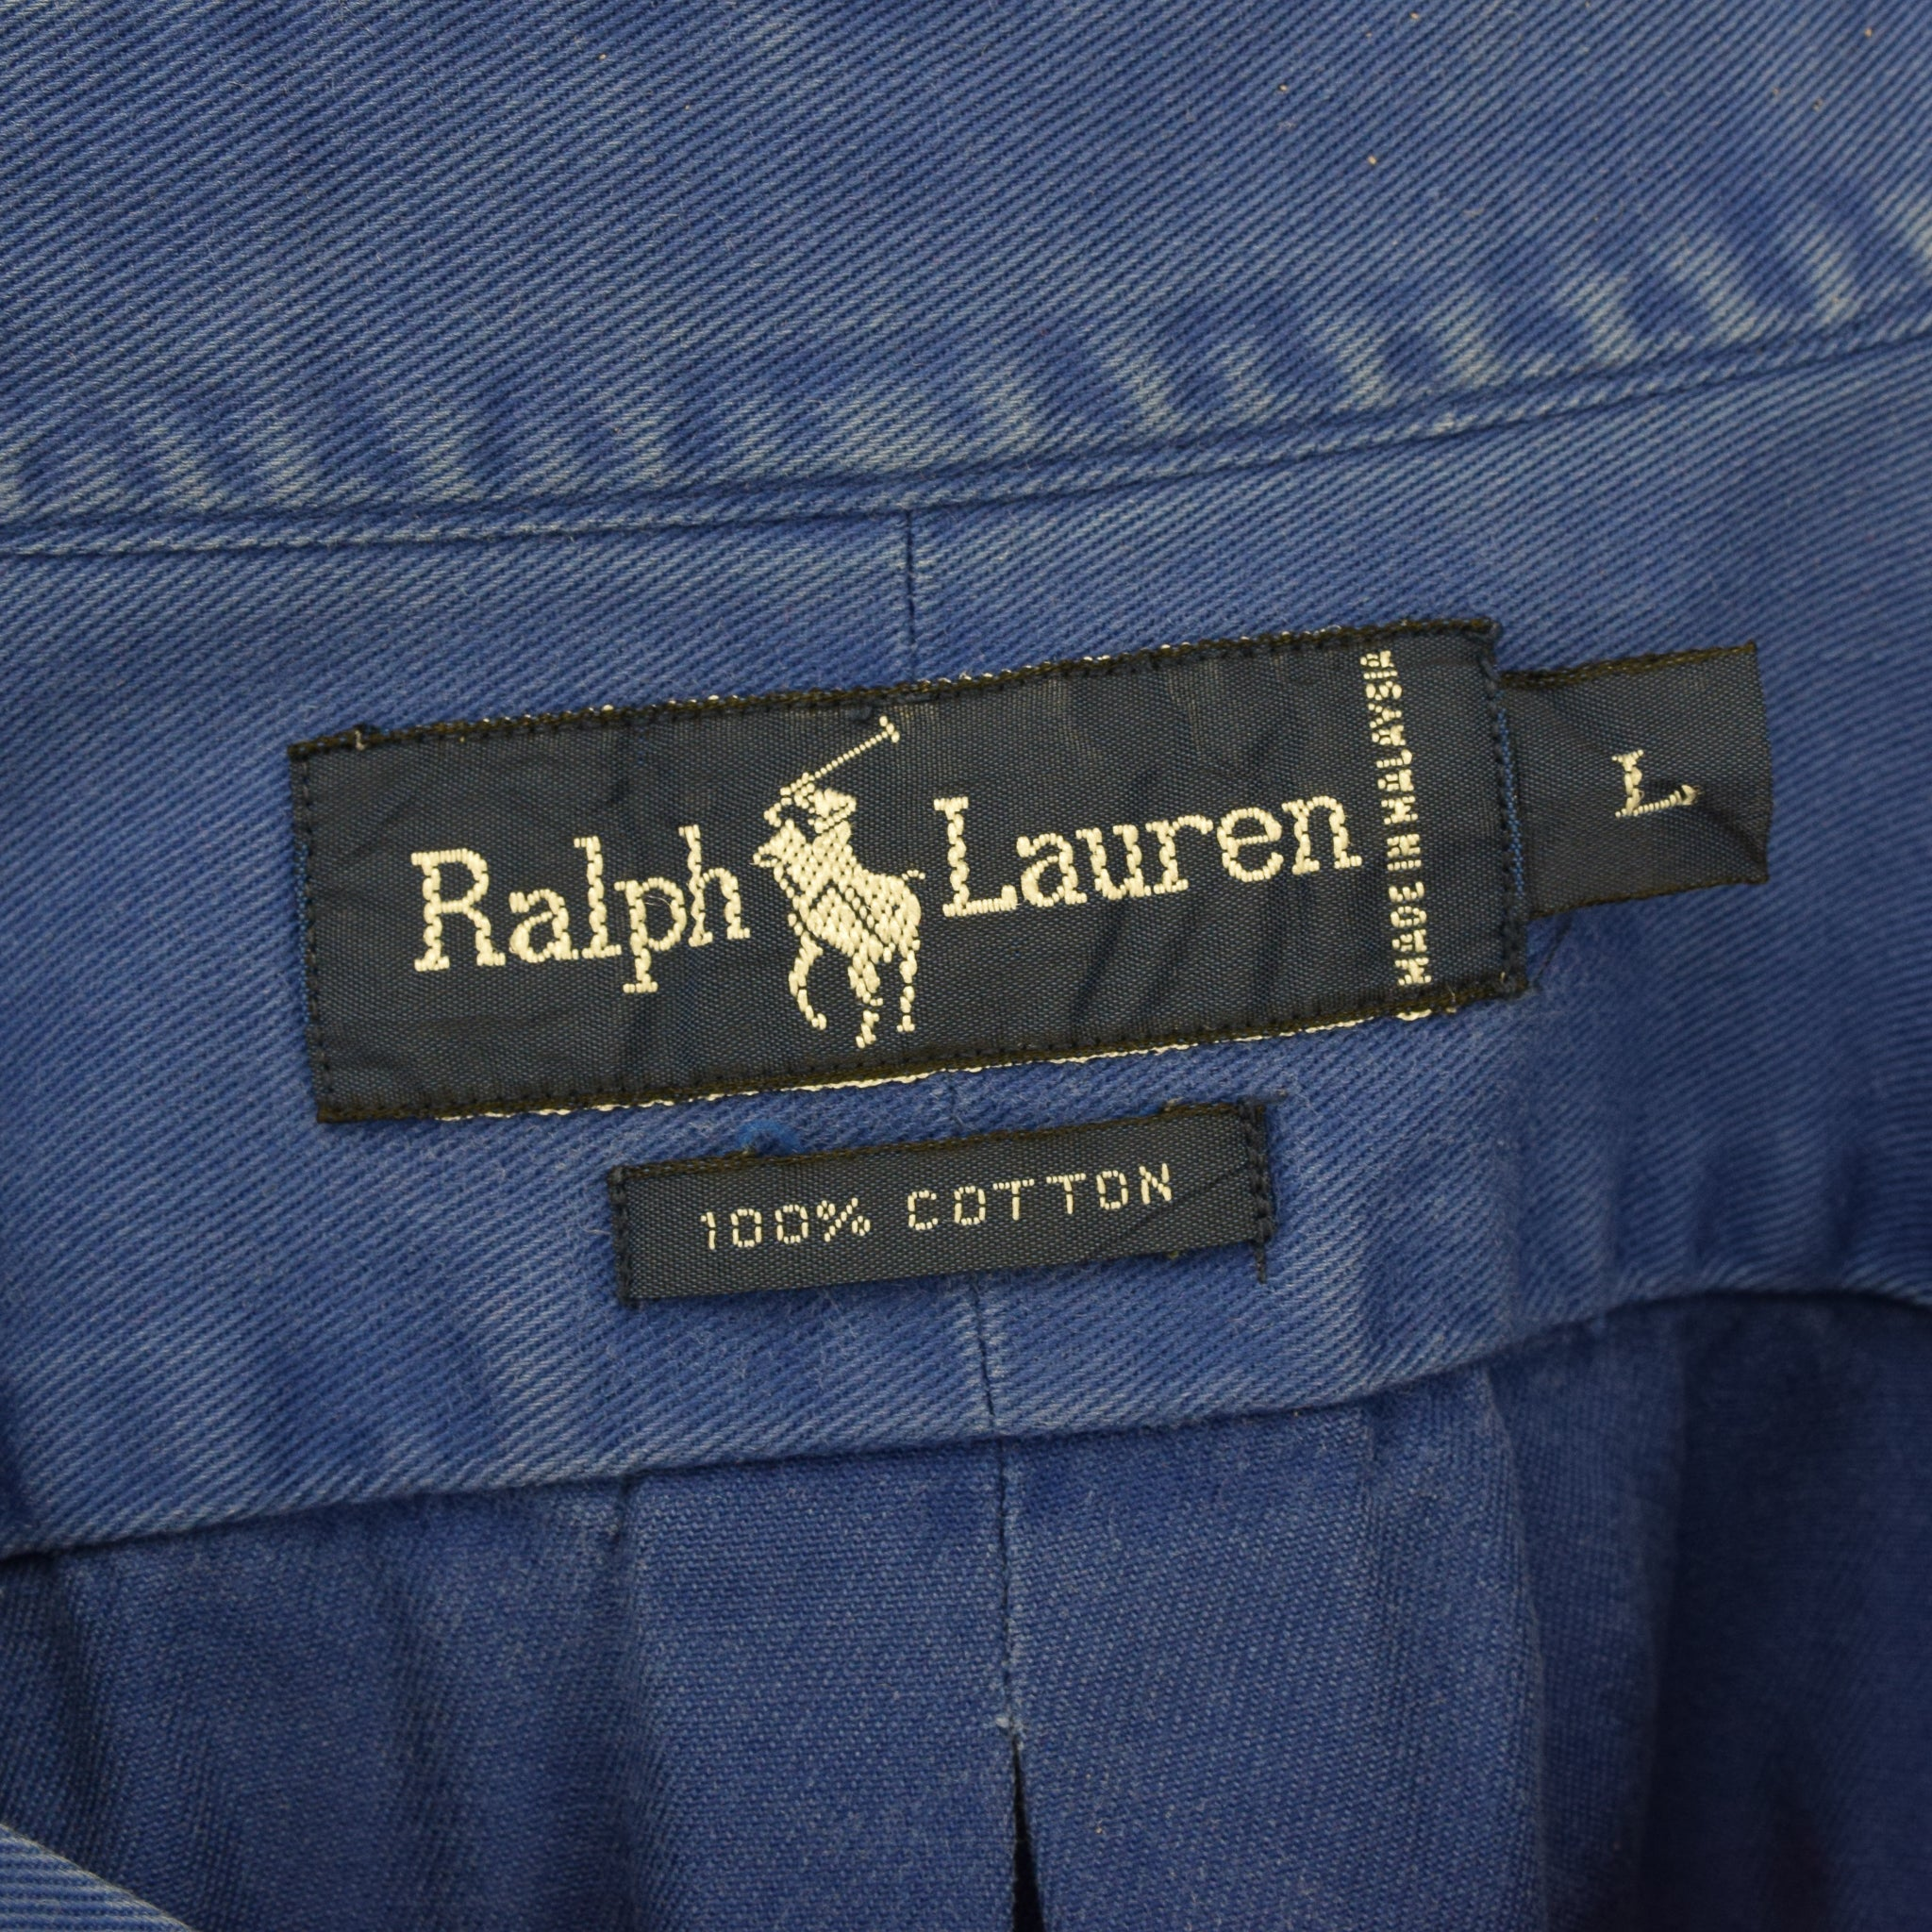 Vintage 80s Ralph Lauren Polo Blue Long Sleeve Cotton Shirt L label